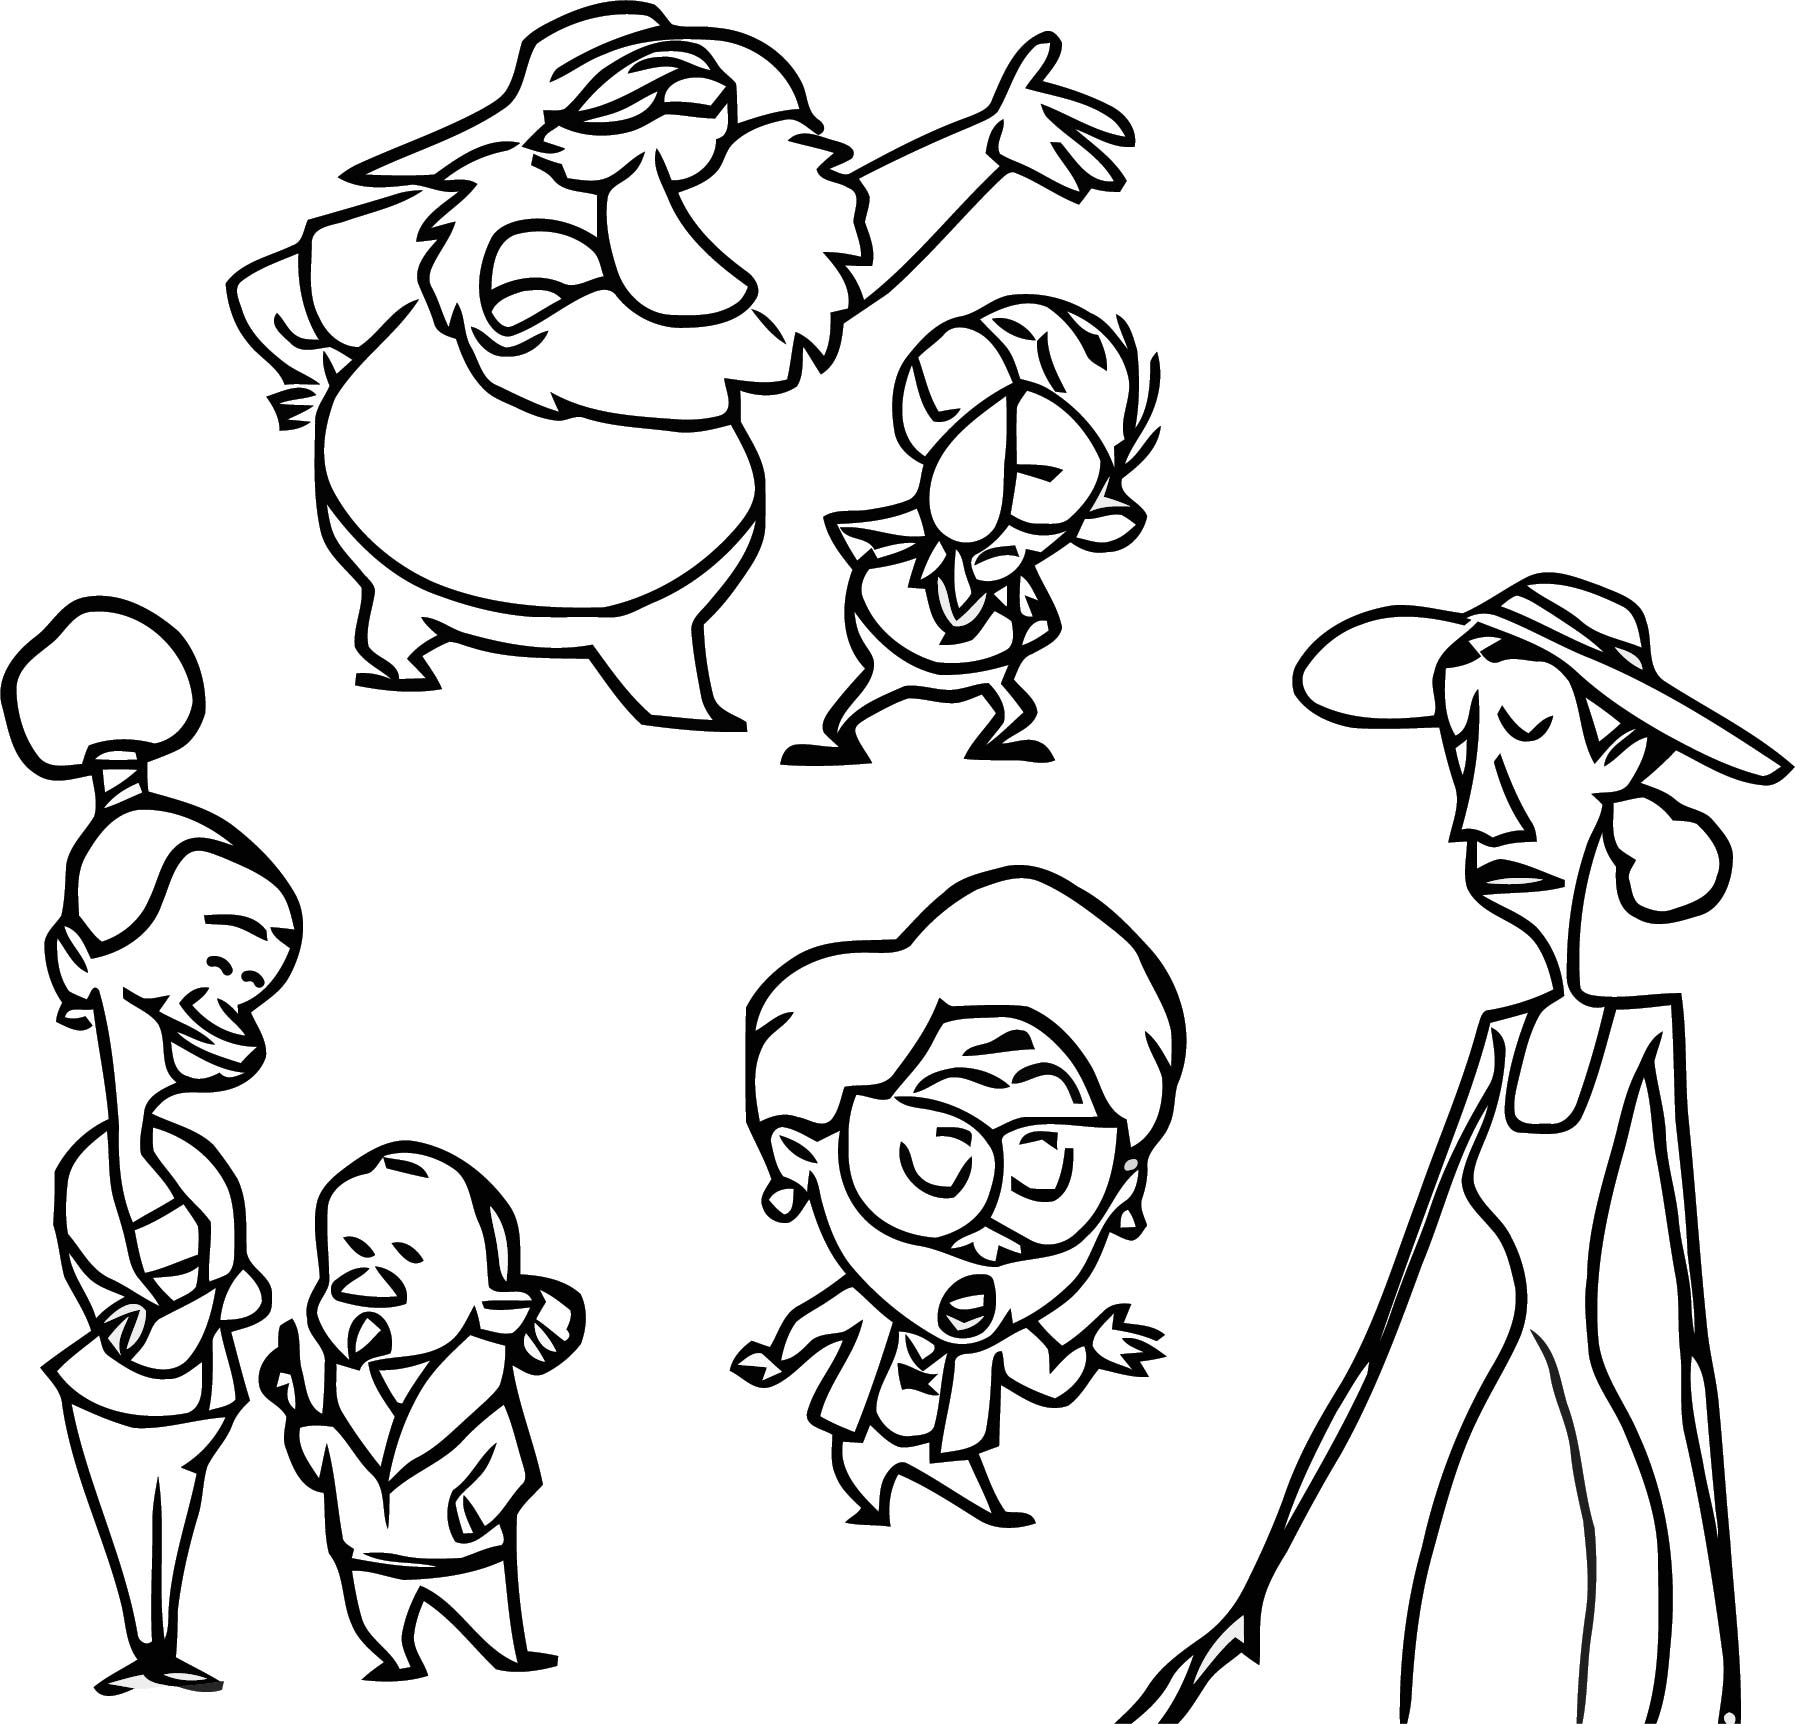 Sc Characters Talking Cartoon Coloring Page